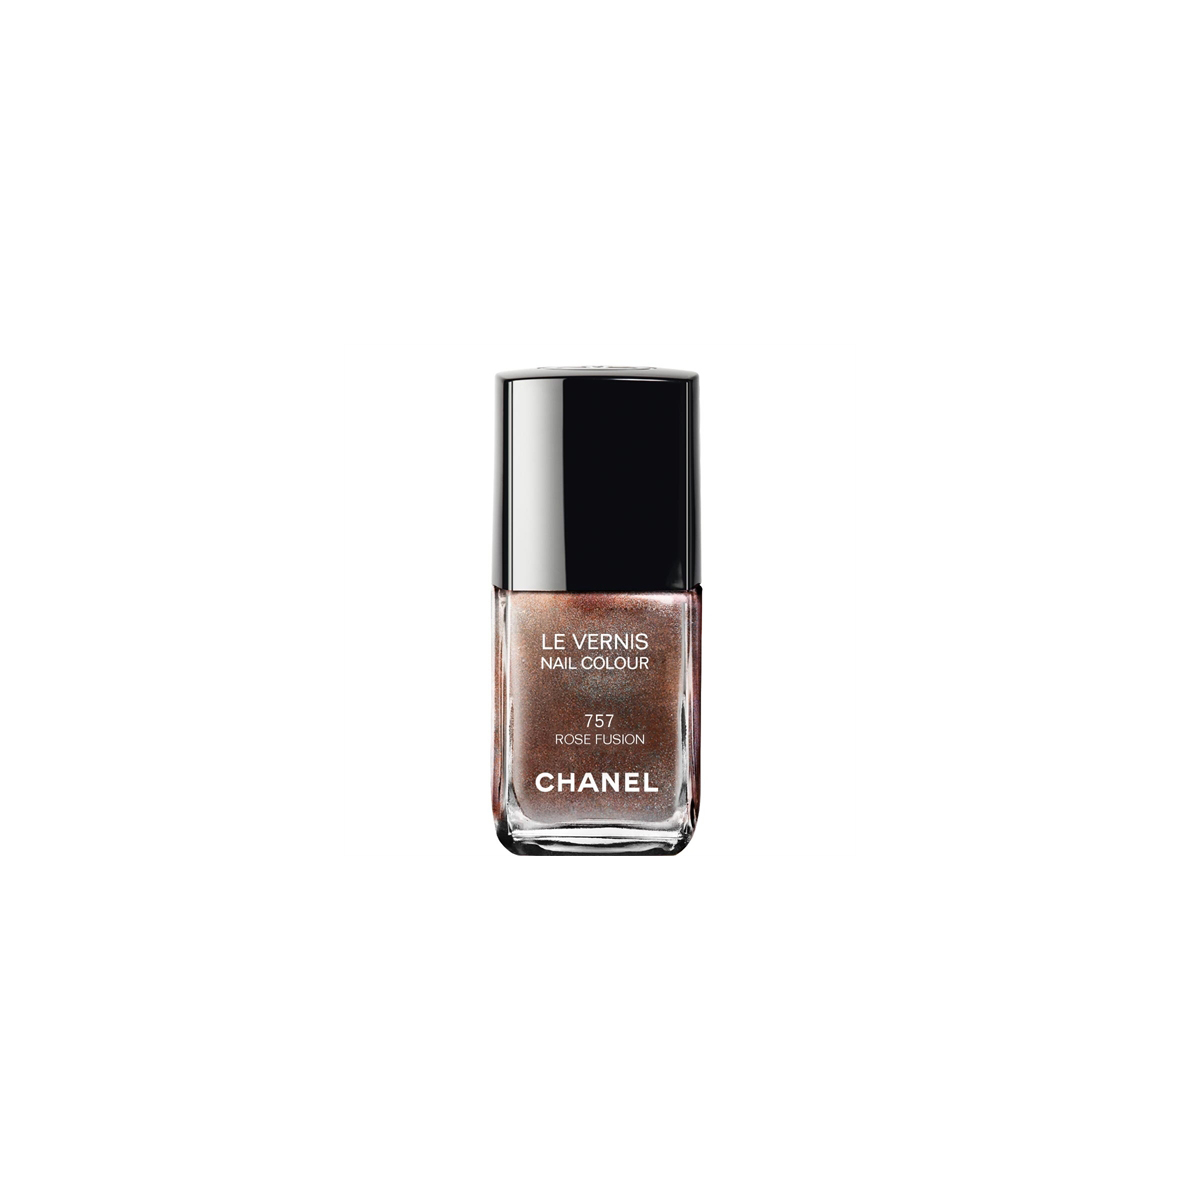 Chanel Le Vernis in Rose Fusion